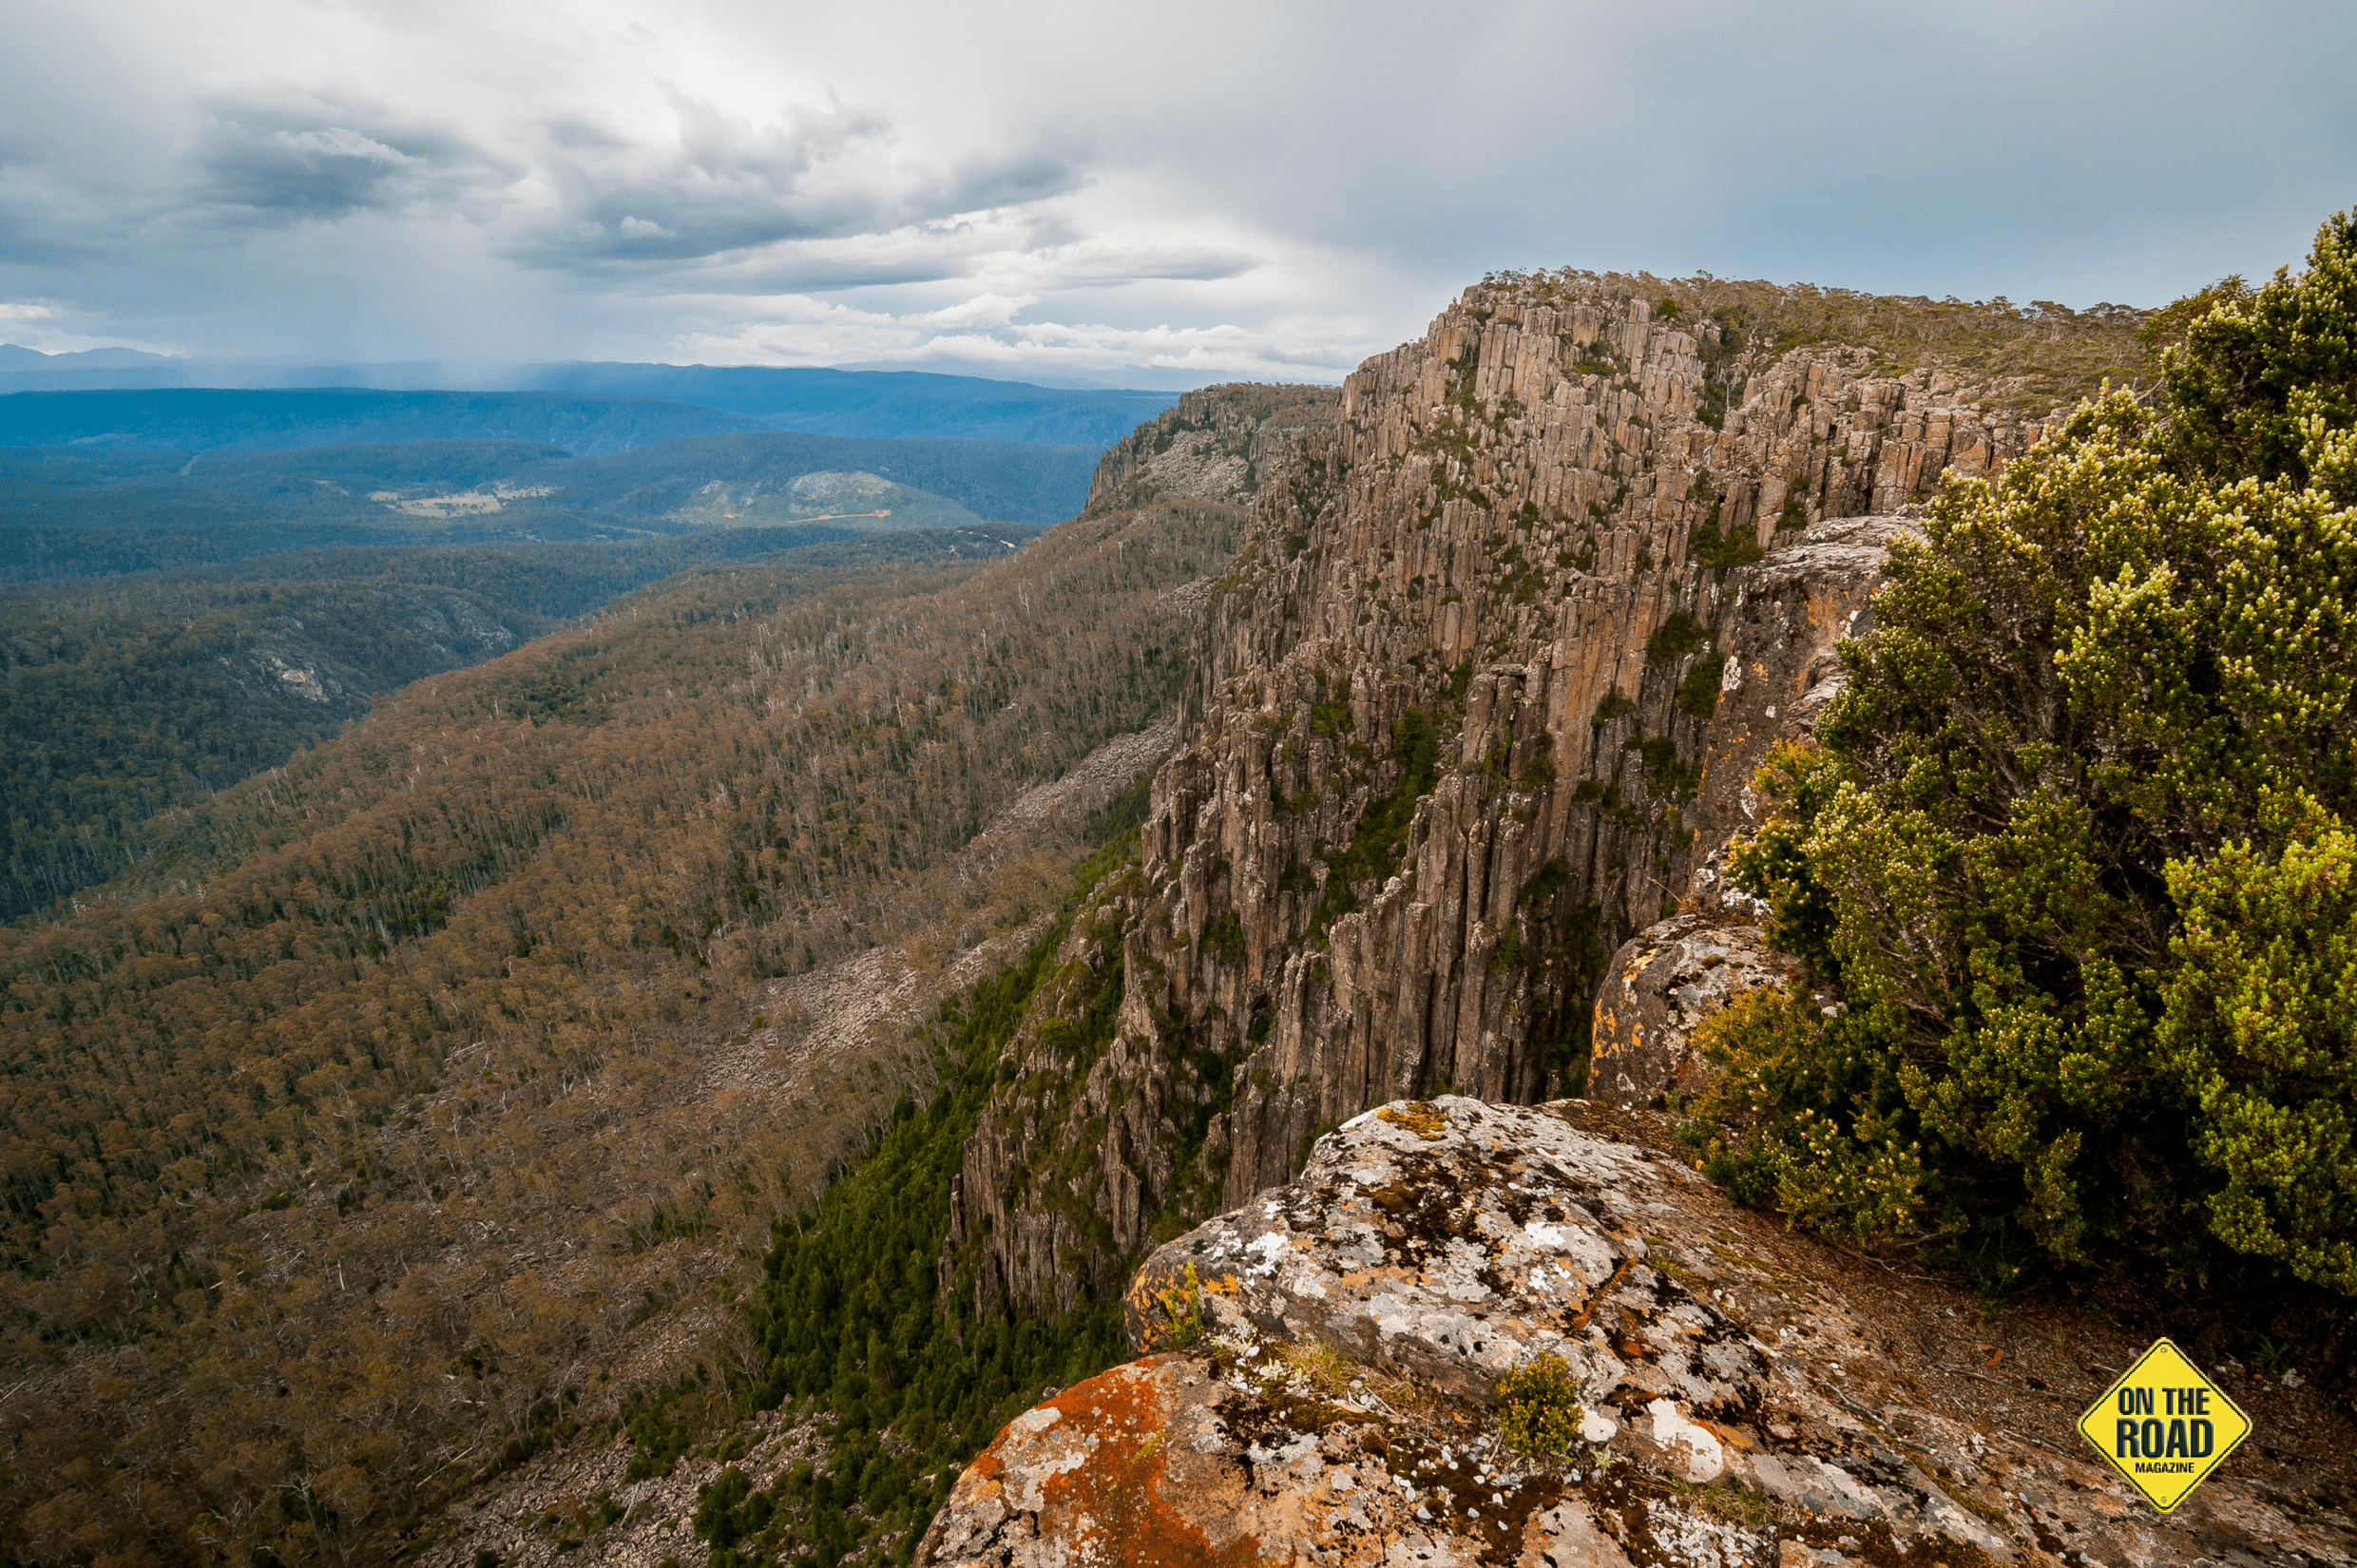 The view from Devils Gullet takes in Tasmania's highest mountain peaks